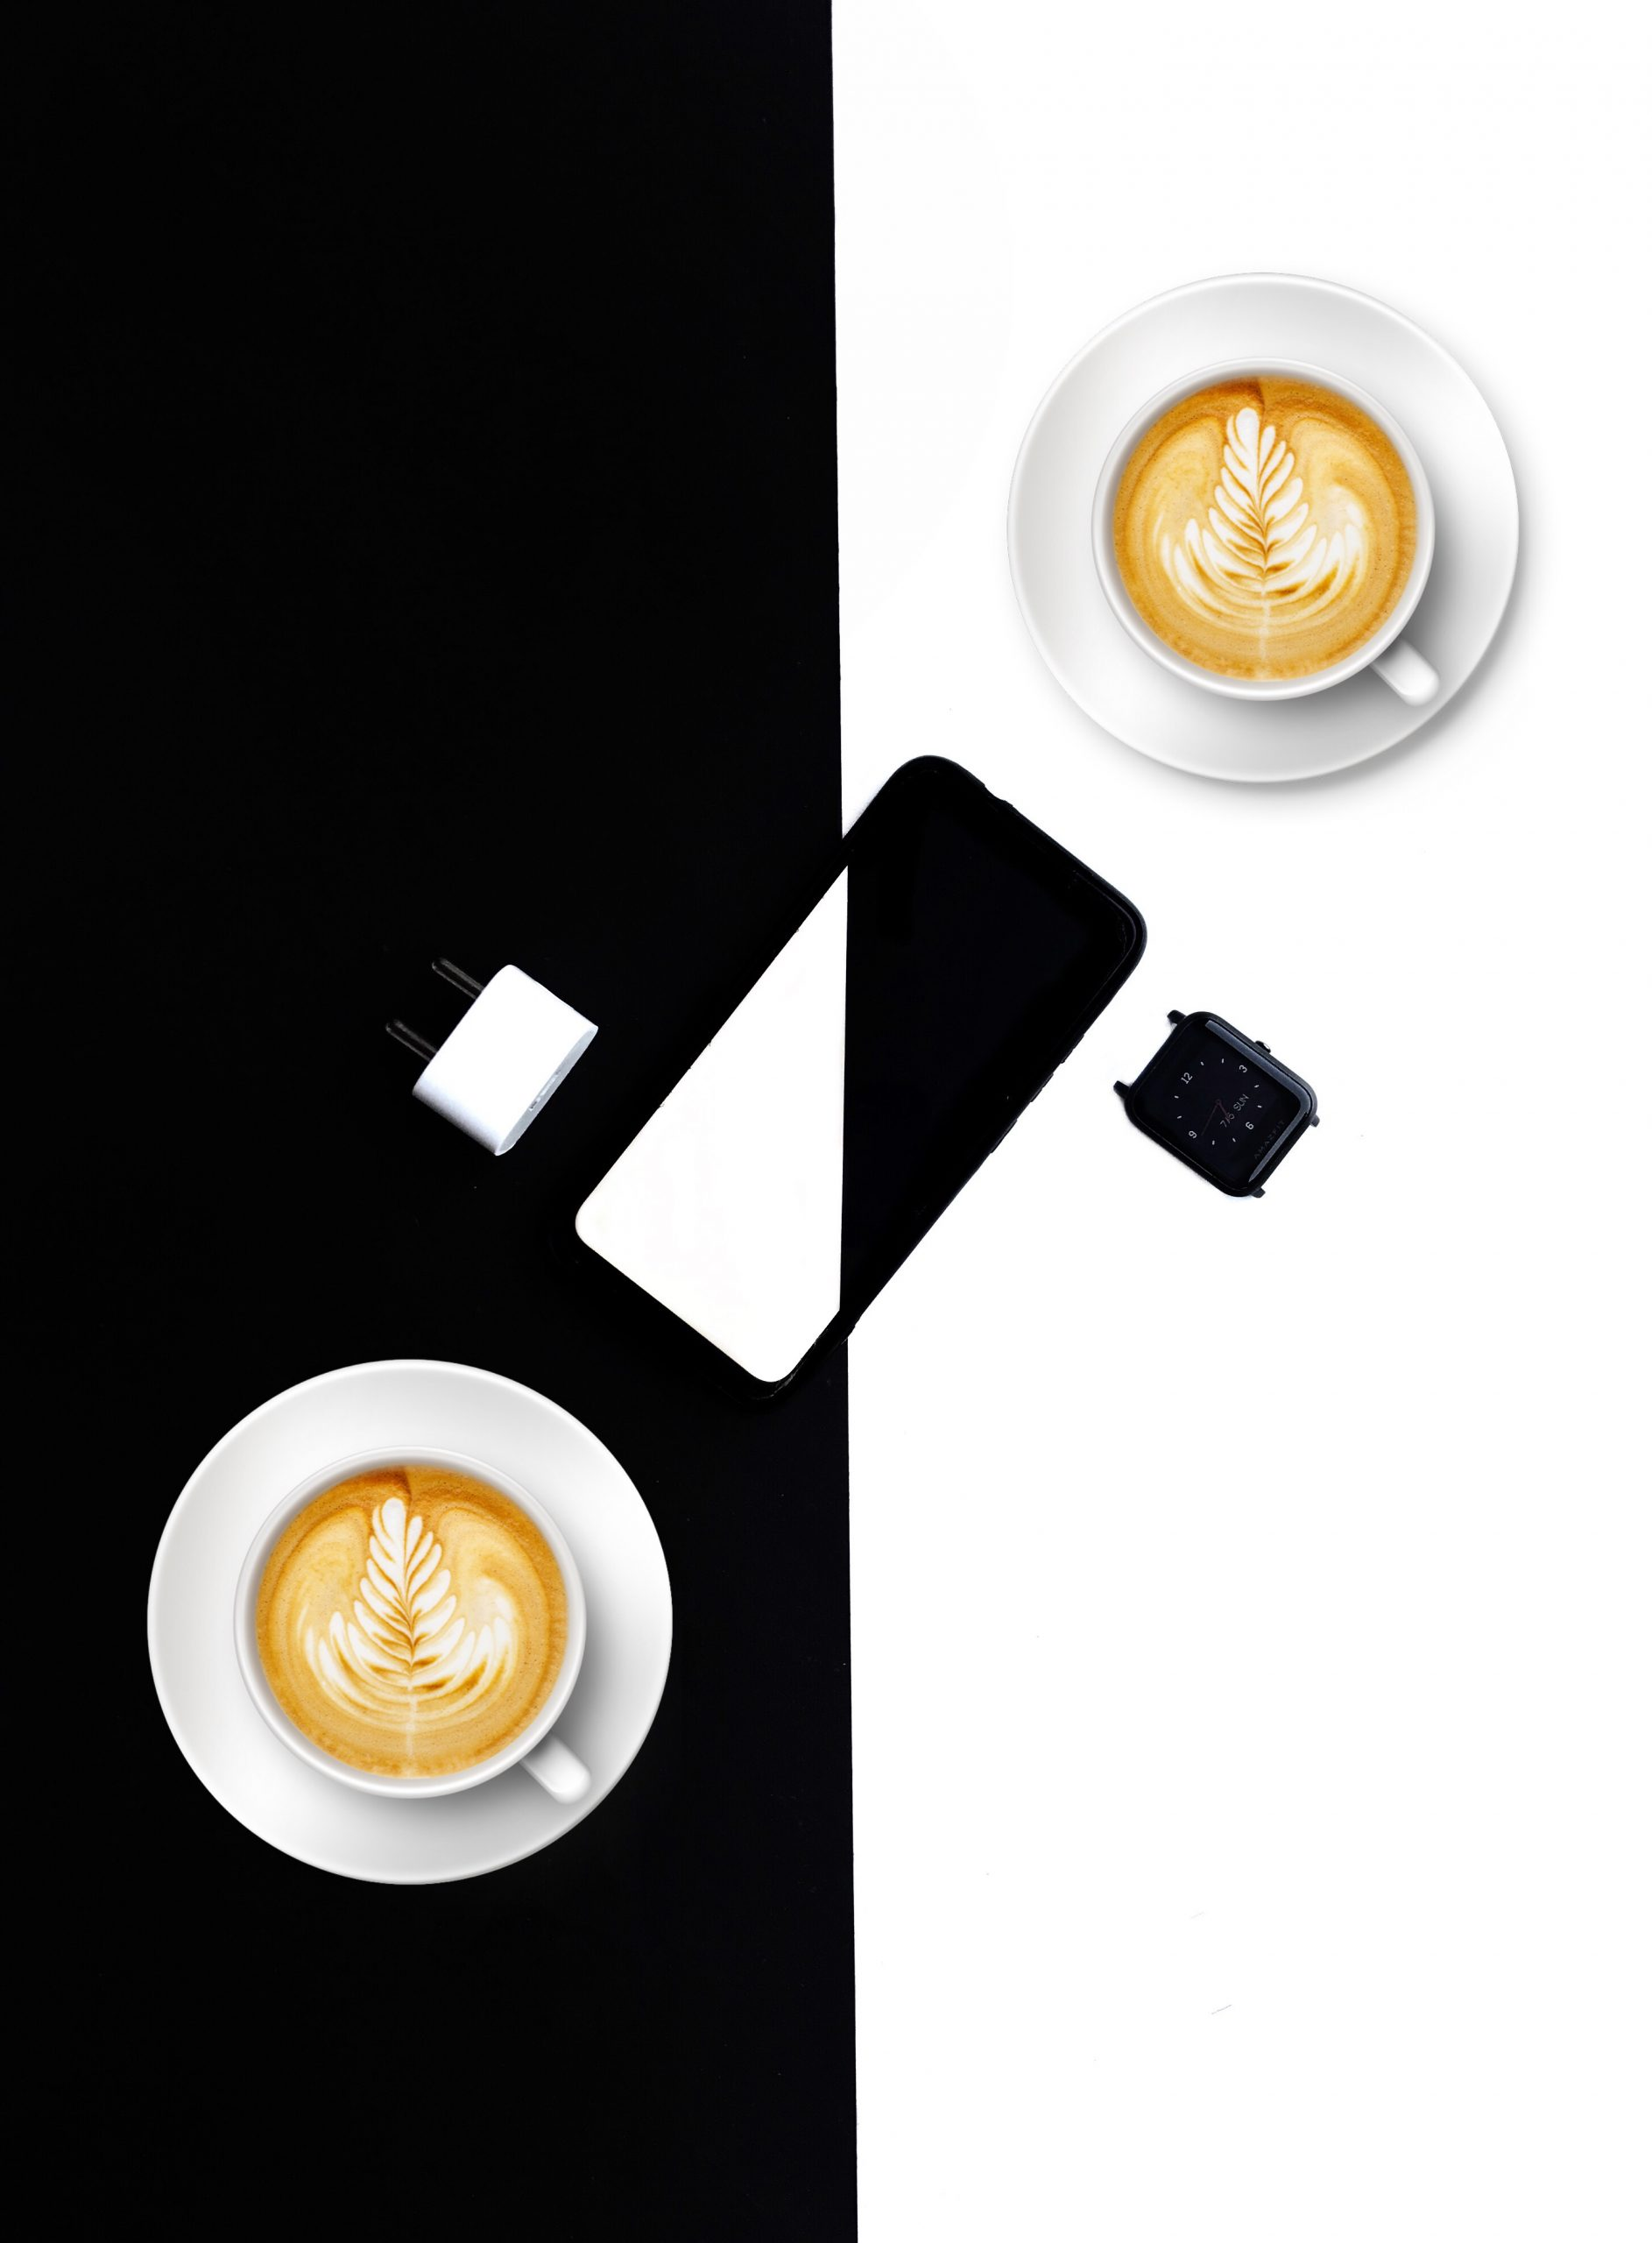 A flatlay product shot of A phone